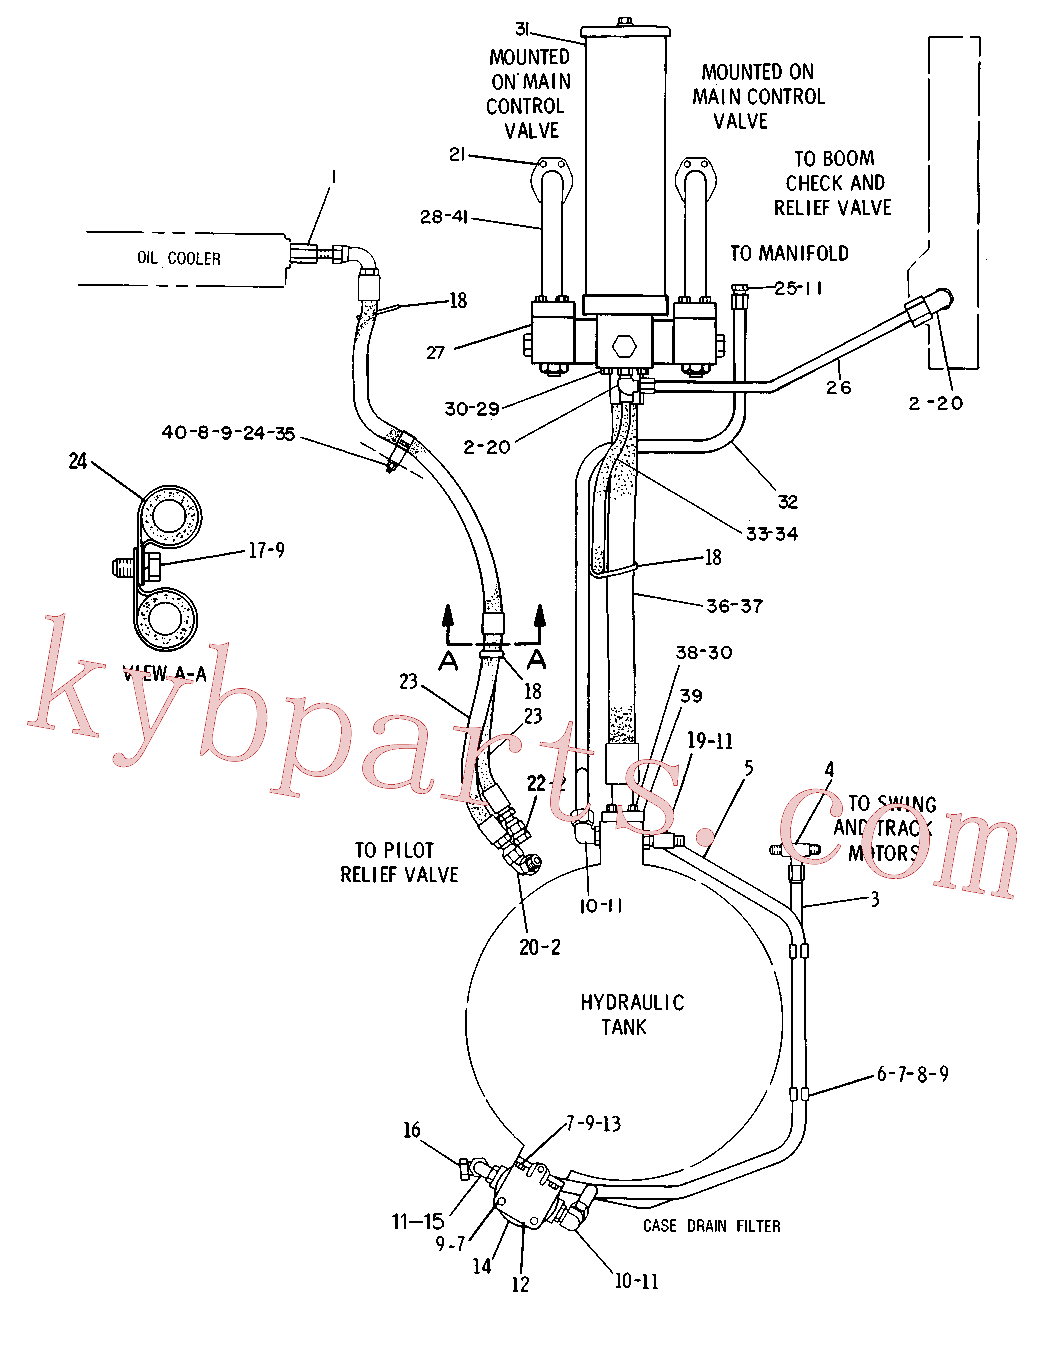 CAT 5J-2926 for 235D Excavator(EXC) hydraulic system 5C-0383 Assembly